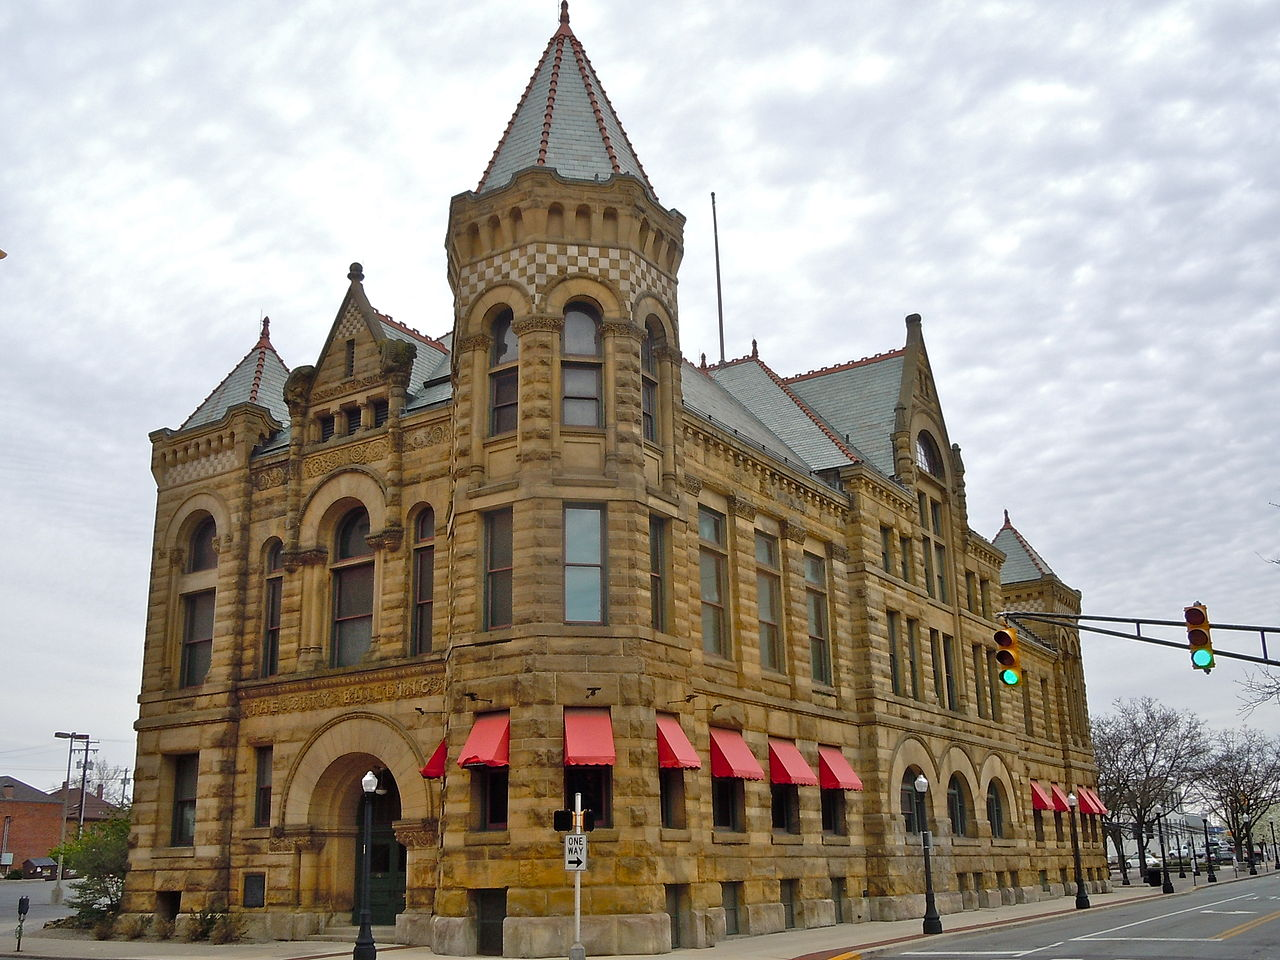 The former city hall building houses the Allen County-Fort Wayne Historical Society and The History Center museum.